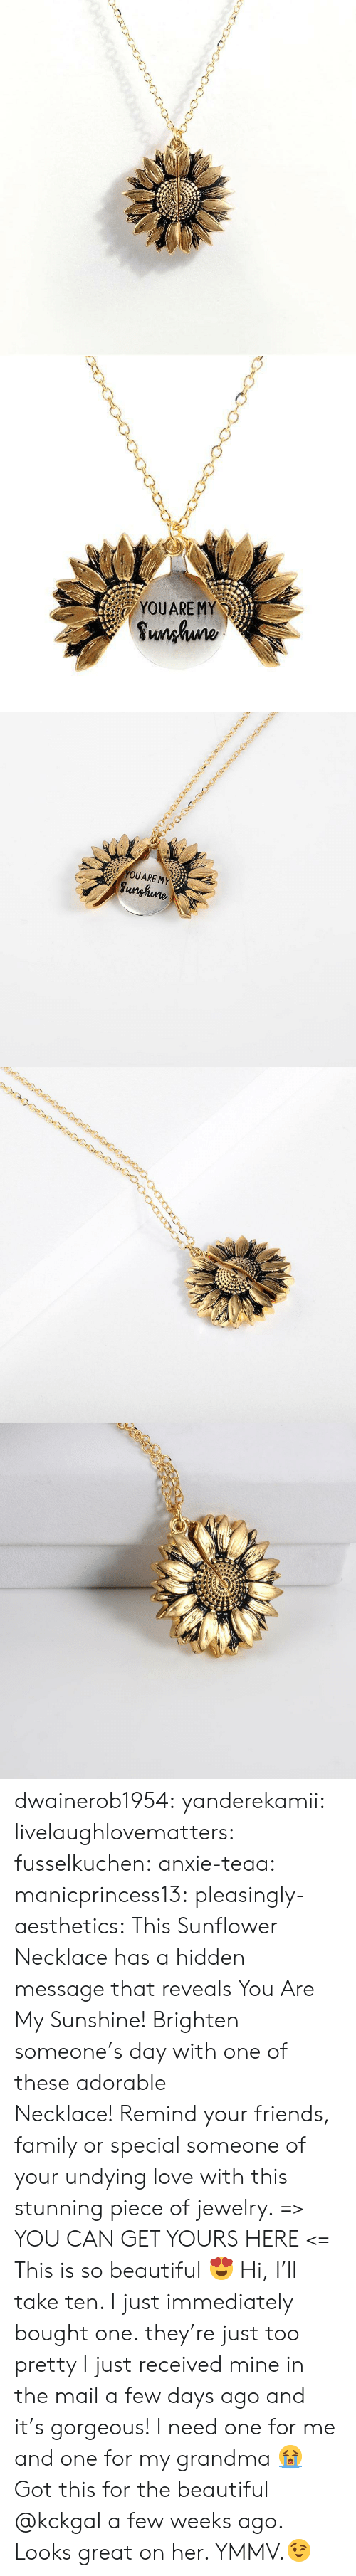 So Beautiful: YOUARE MY  Sunhuno   YOUARE MY  Sunghune dwainerob1954:  yanderekamii:  livelaughlovematters:  fusselkuchen: anxie-teaa:   manicprincess13:   pleasingly-aesthetics:  This Sunflower Necklace has a hidden message that reveals You Are My Sunshine! Brighten someone's day with one of these adorable Necklace! Remind your friends, family or special someone of your undying love with this stunning piece of jewelry. => YOU CAN GET YOURS HERE <=   This is so beautiful 😍    Hi, I'll take ten.    I just immediately bought one. they're just too pretty   I just received mine in the mail a few days ago and it's gorgeous!  I need one for me and one for my grandma 😭  Got this for the beautiful @kckgal a few weeks ago.  Looks great on her. YMMV.😉